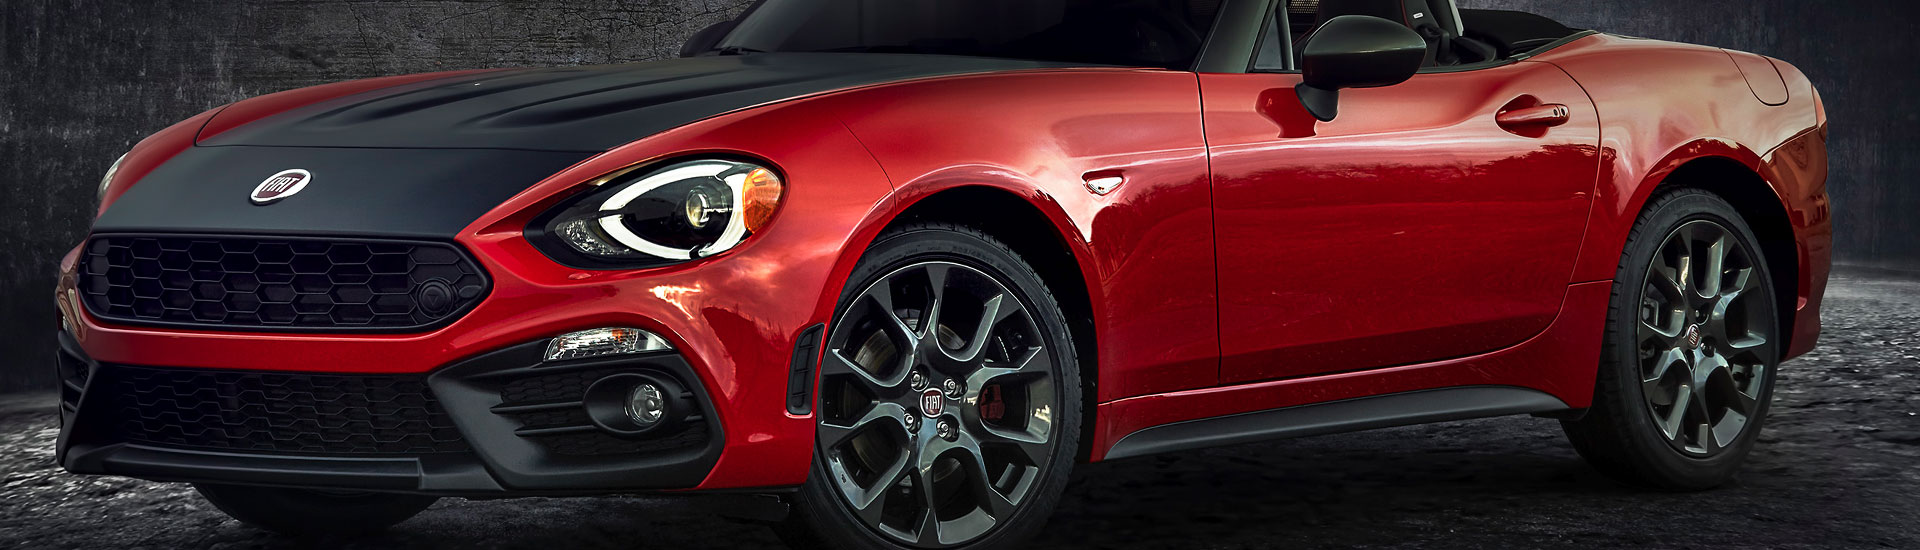 Fiat Aftermarket Accessories & Tints